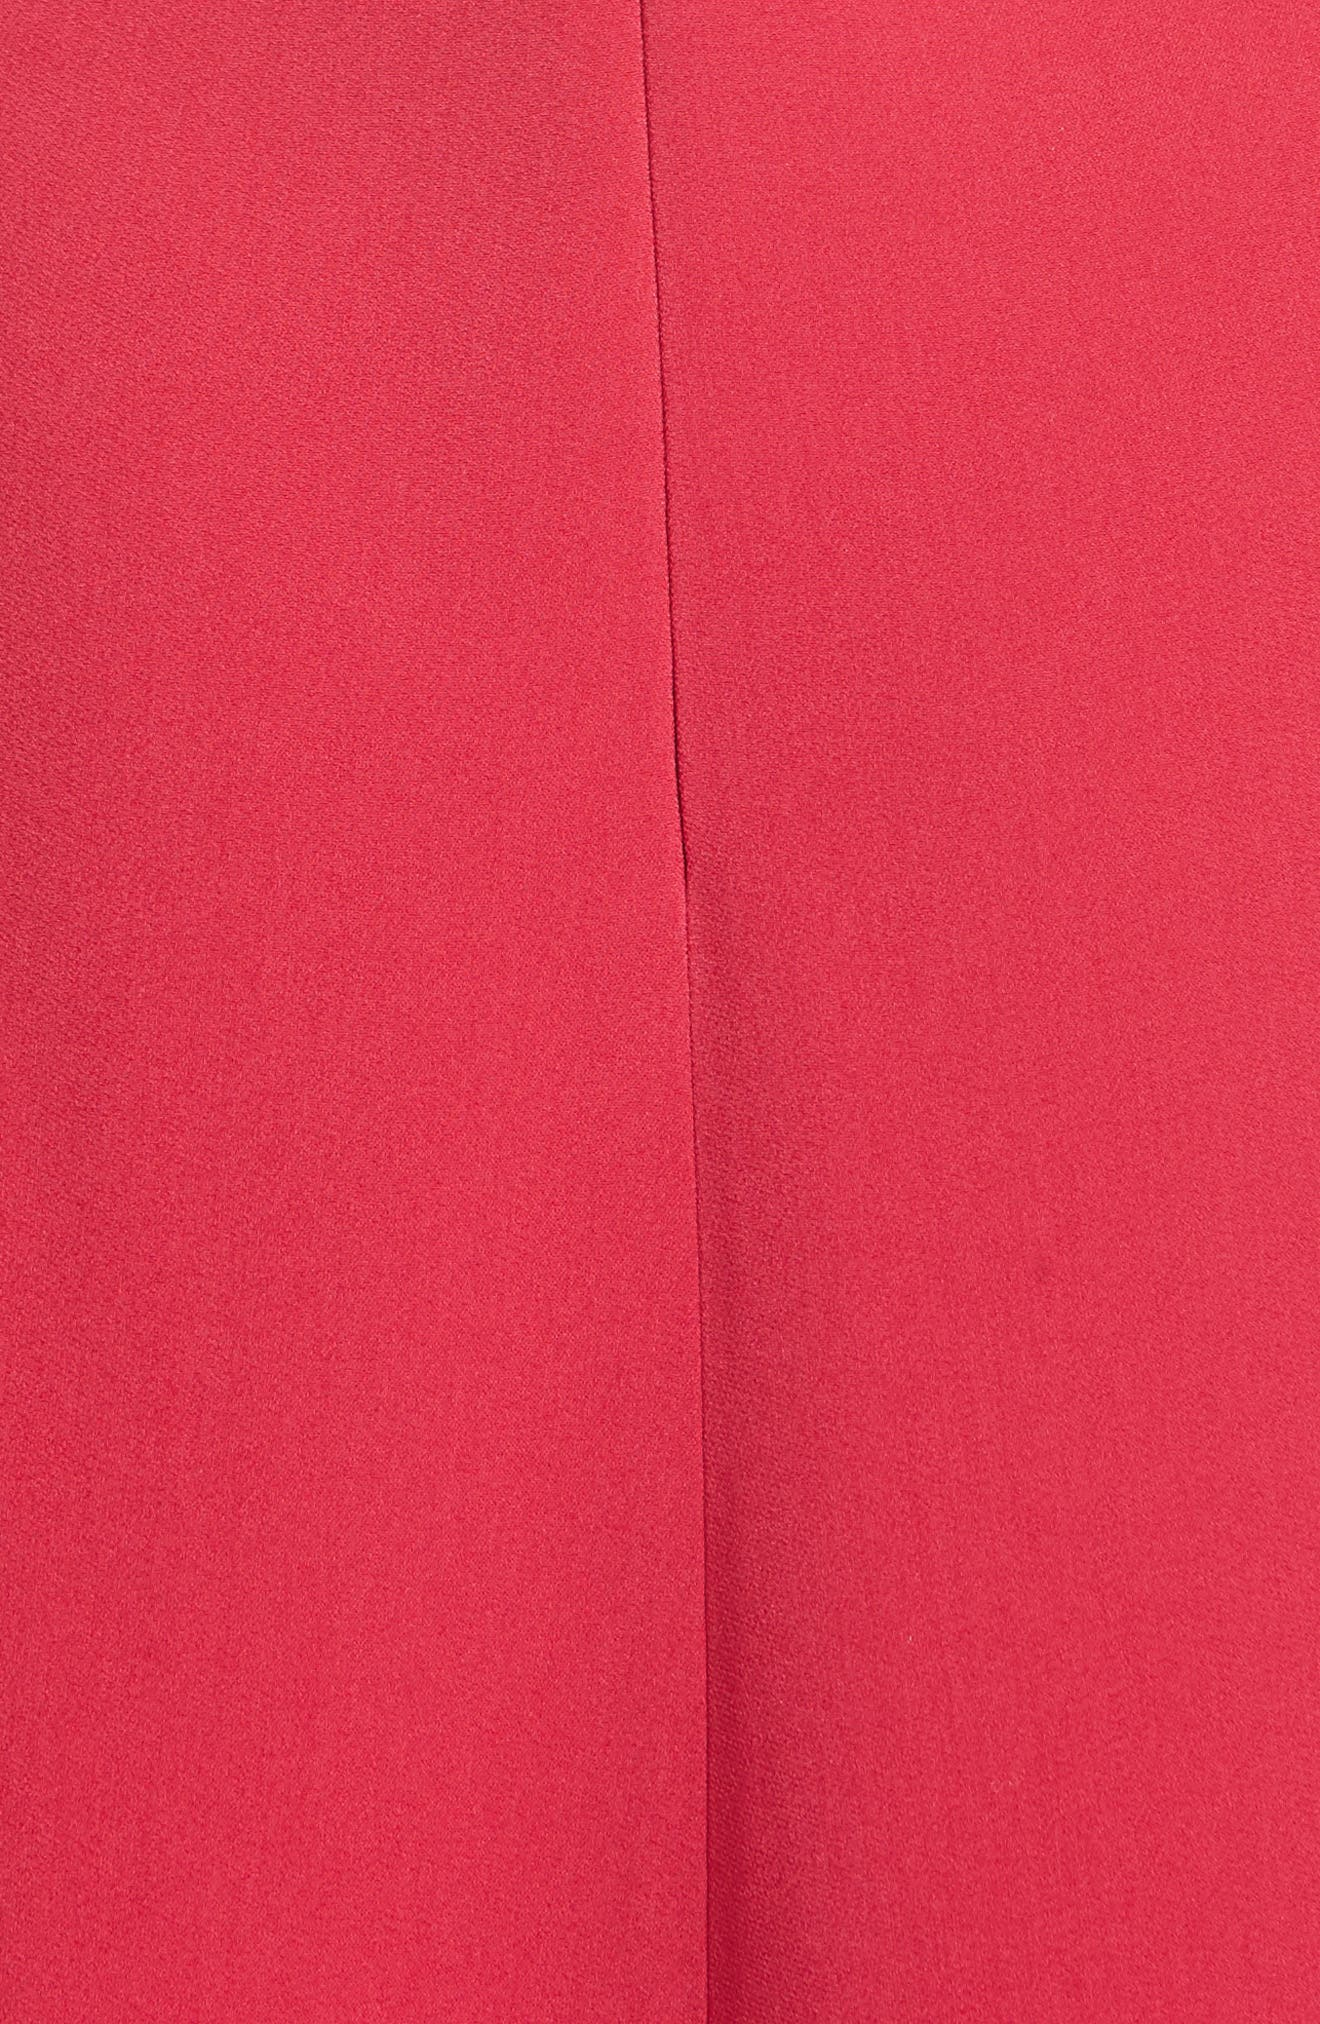 Draped Stretch Cady Dress,                             Alternate thumbnail 3, color,                             Hot Pink